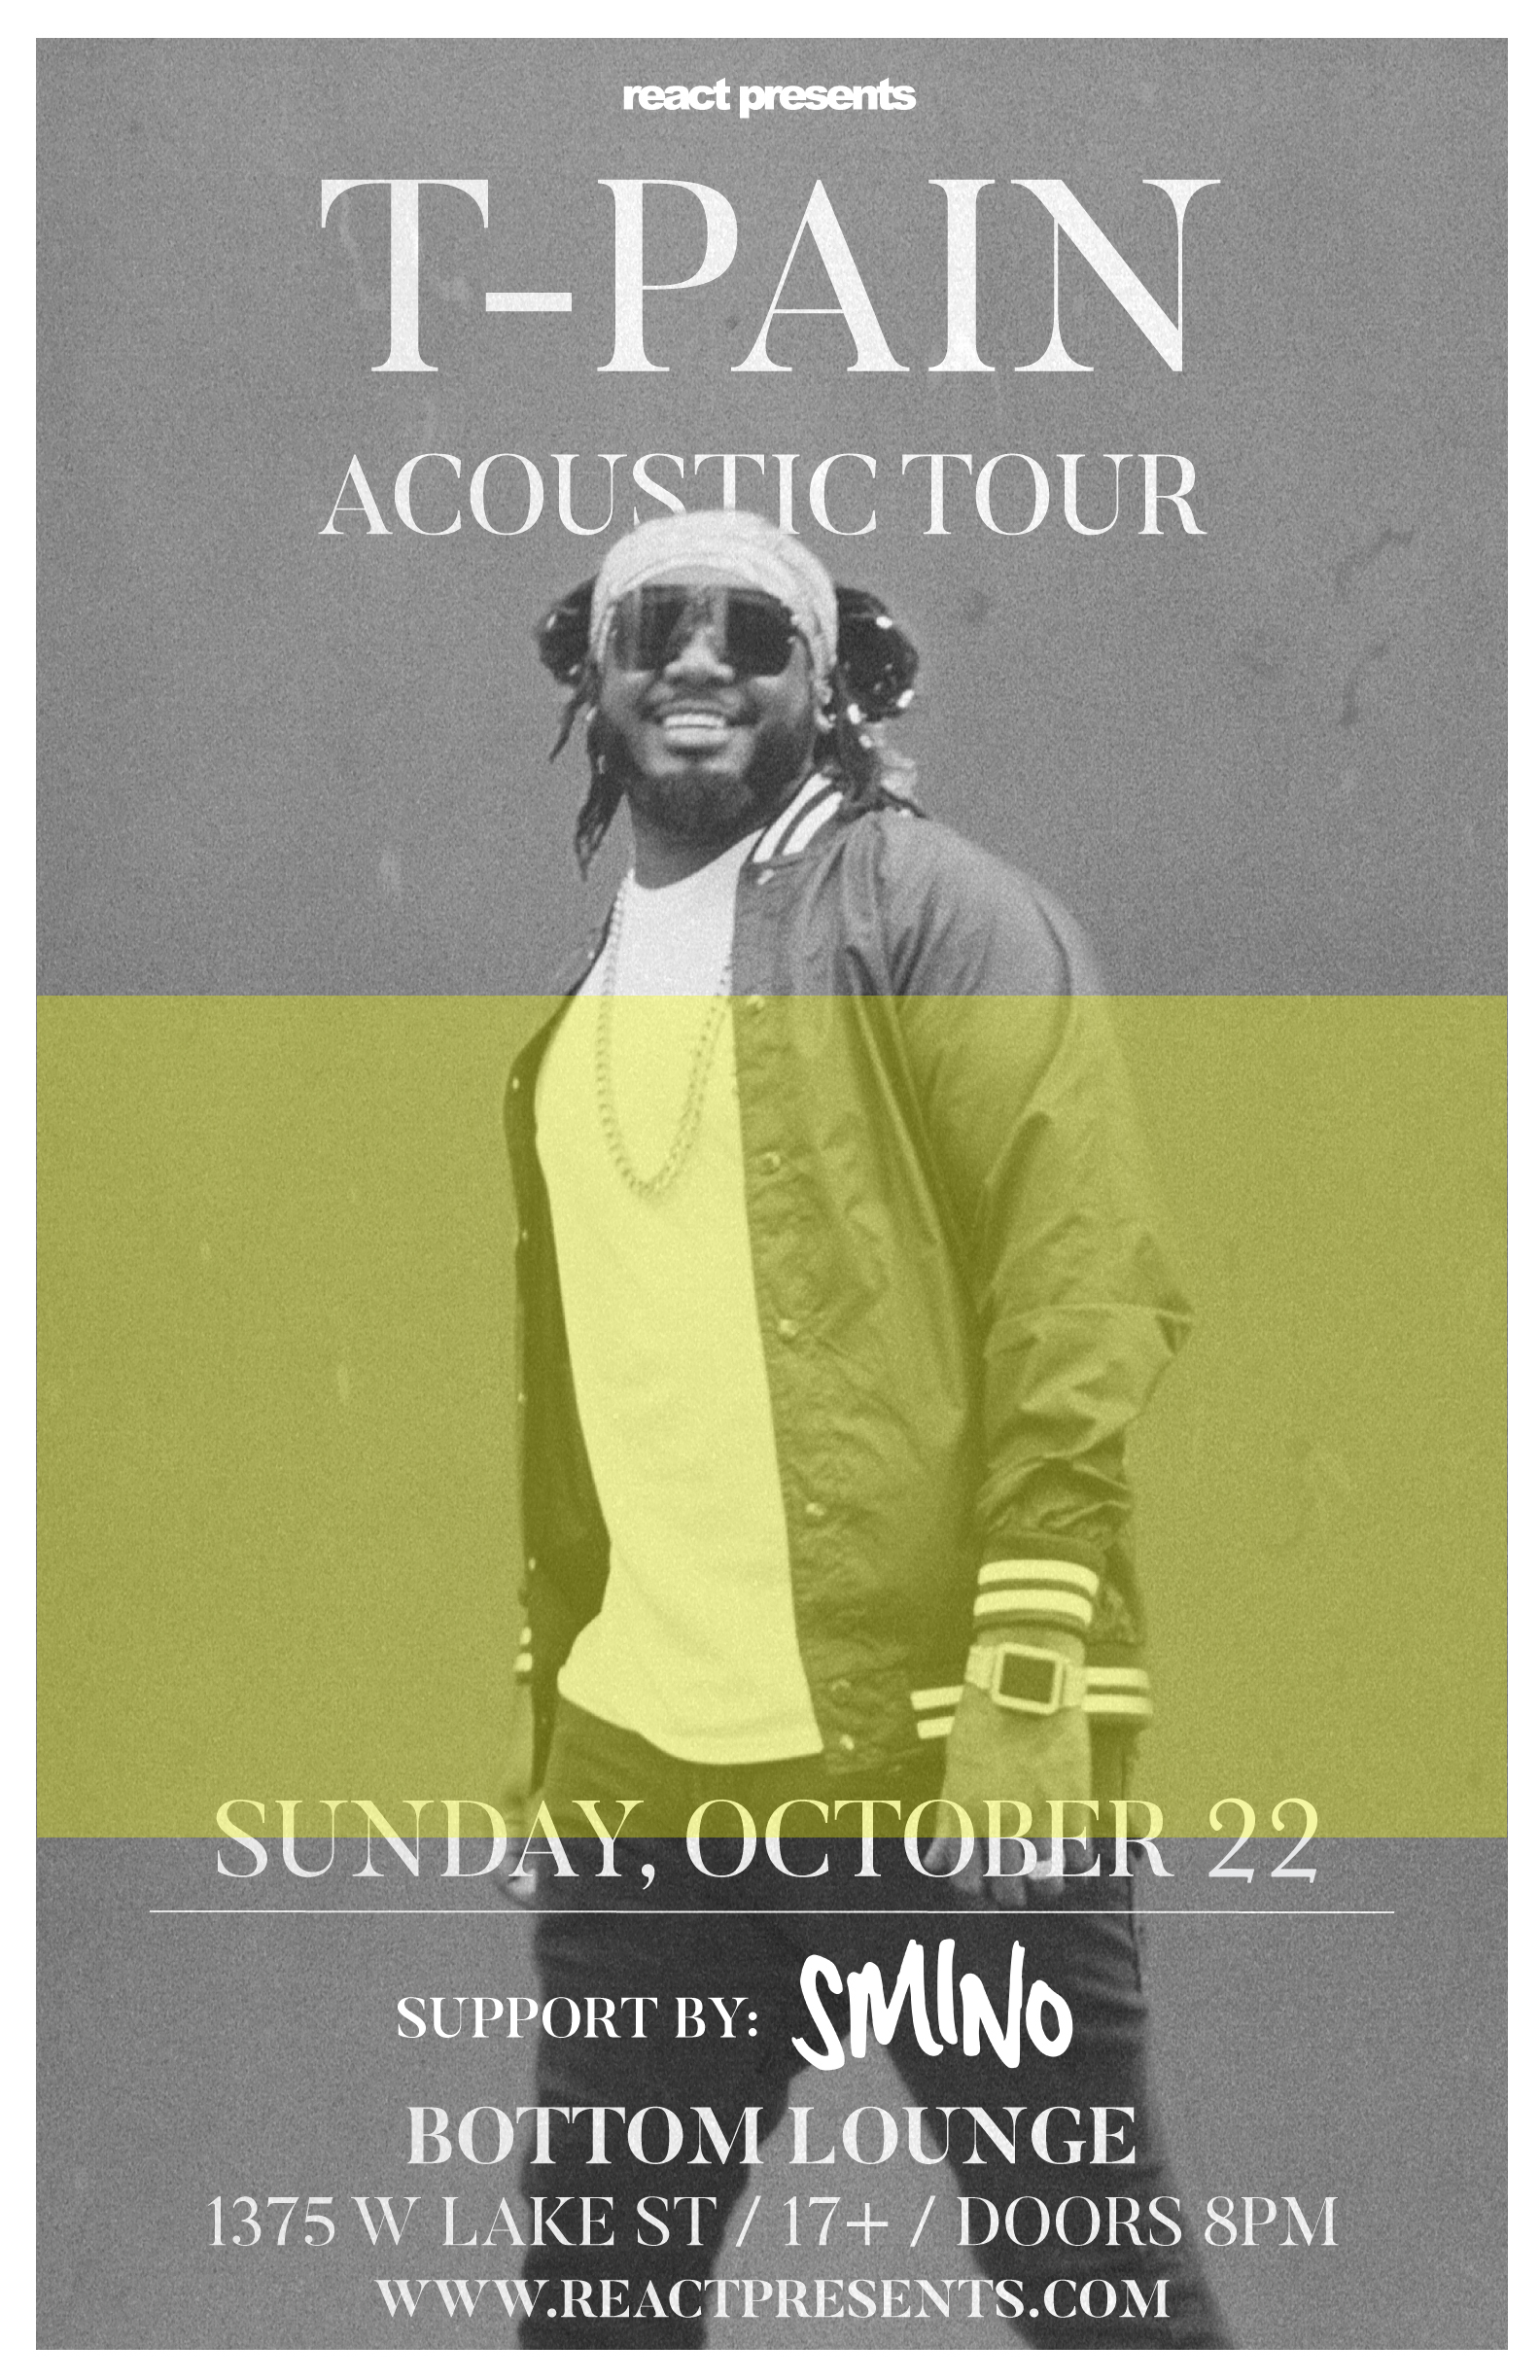 SOLD OUT! – React Presents: T-PAIN: The Acoustic Tour with SMINO * BOATHOUSE